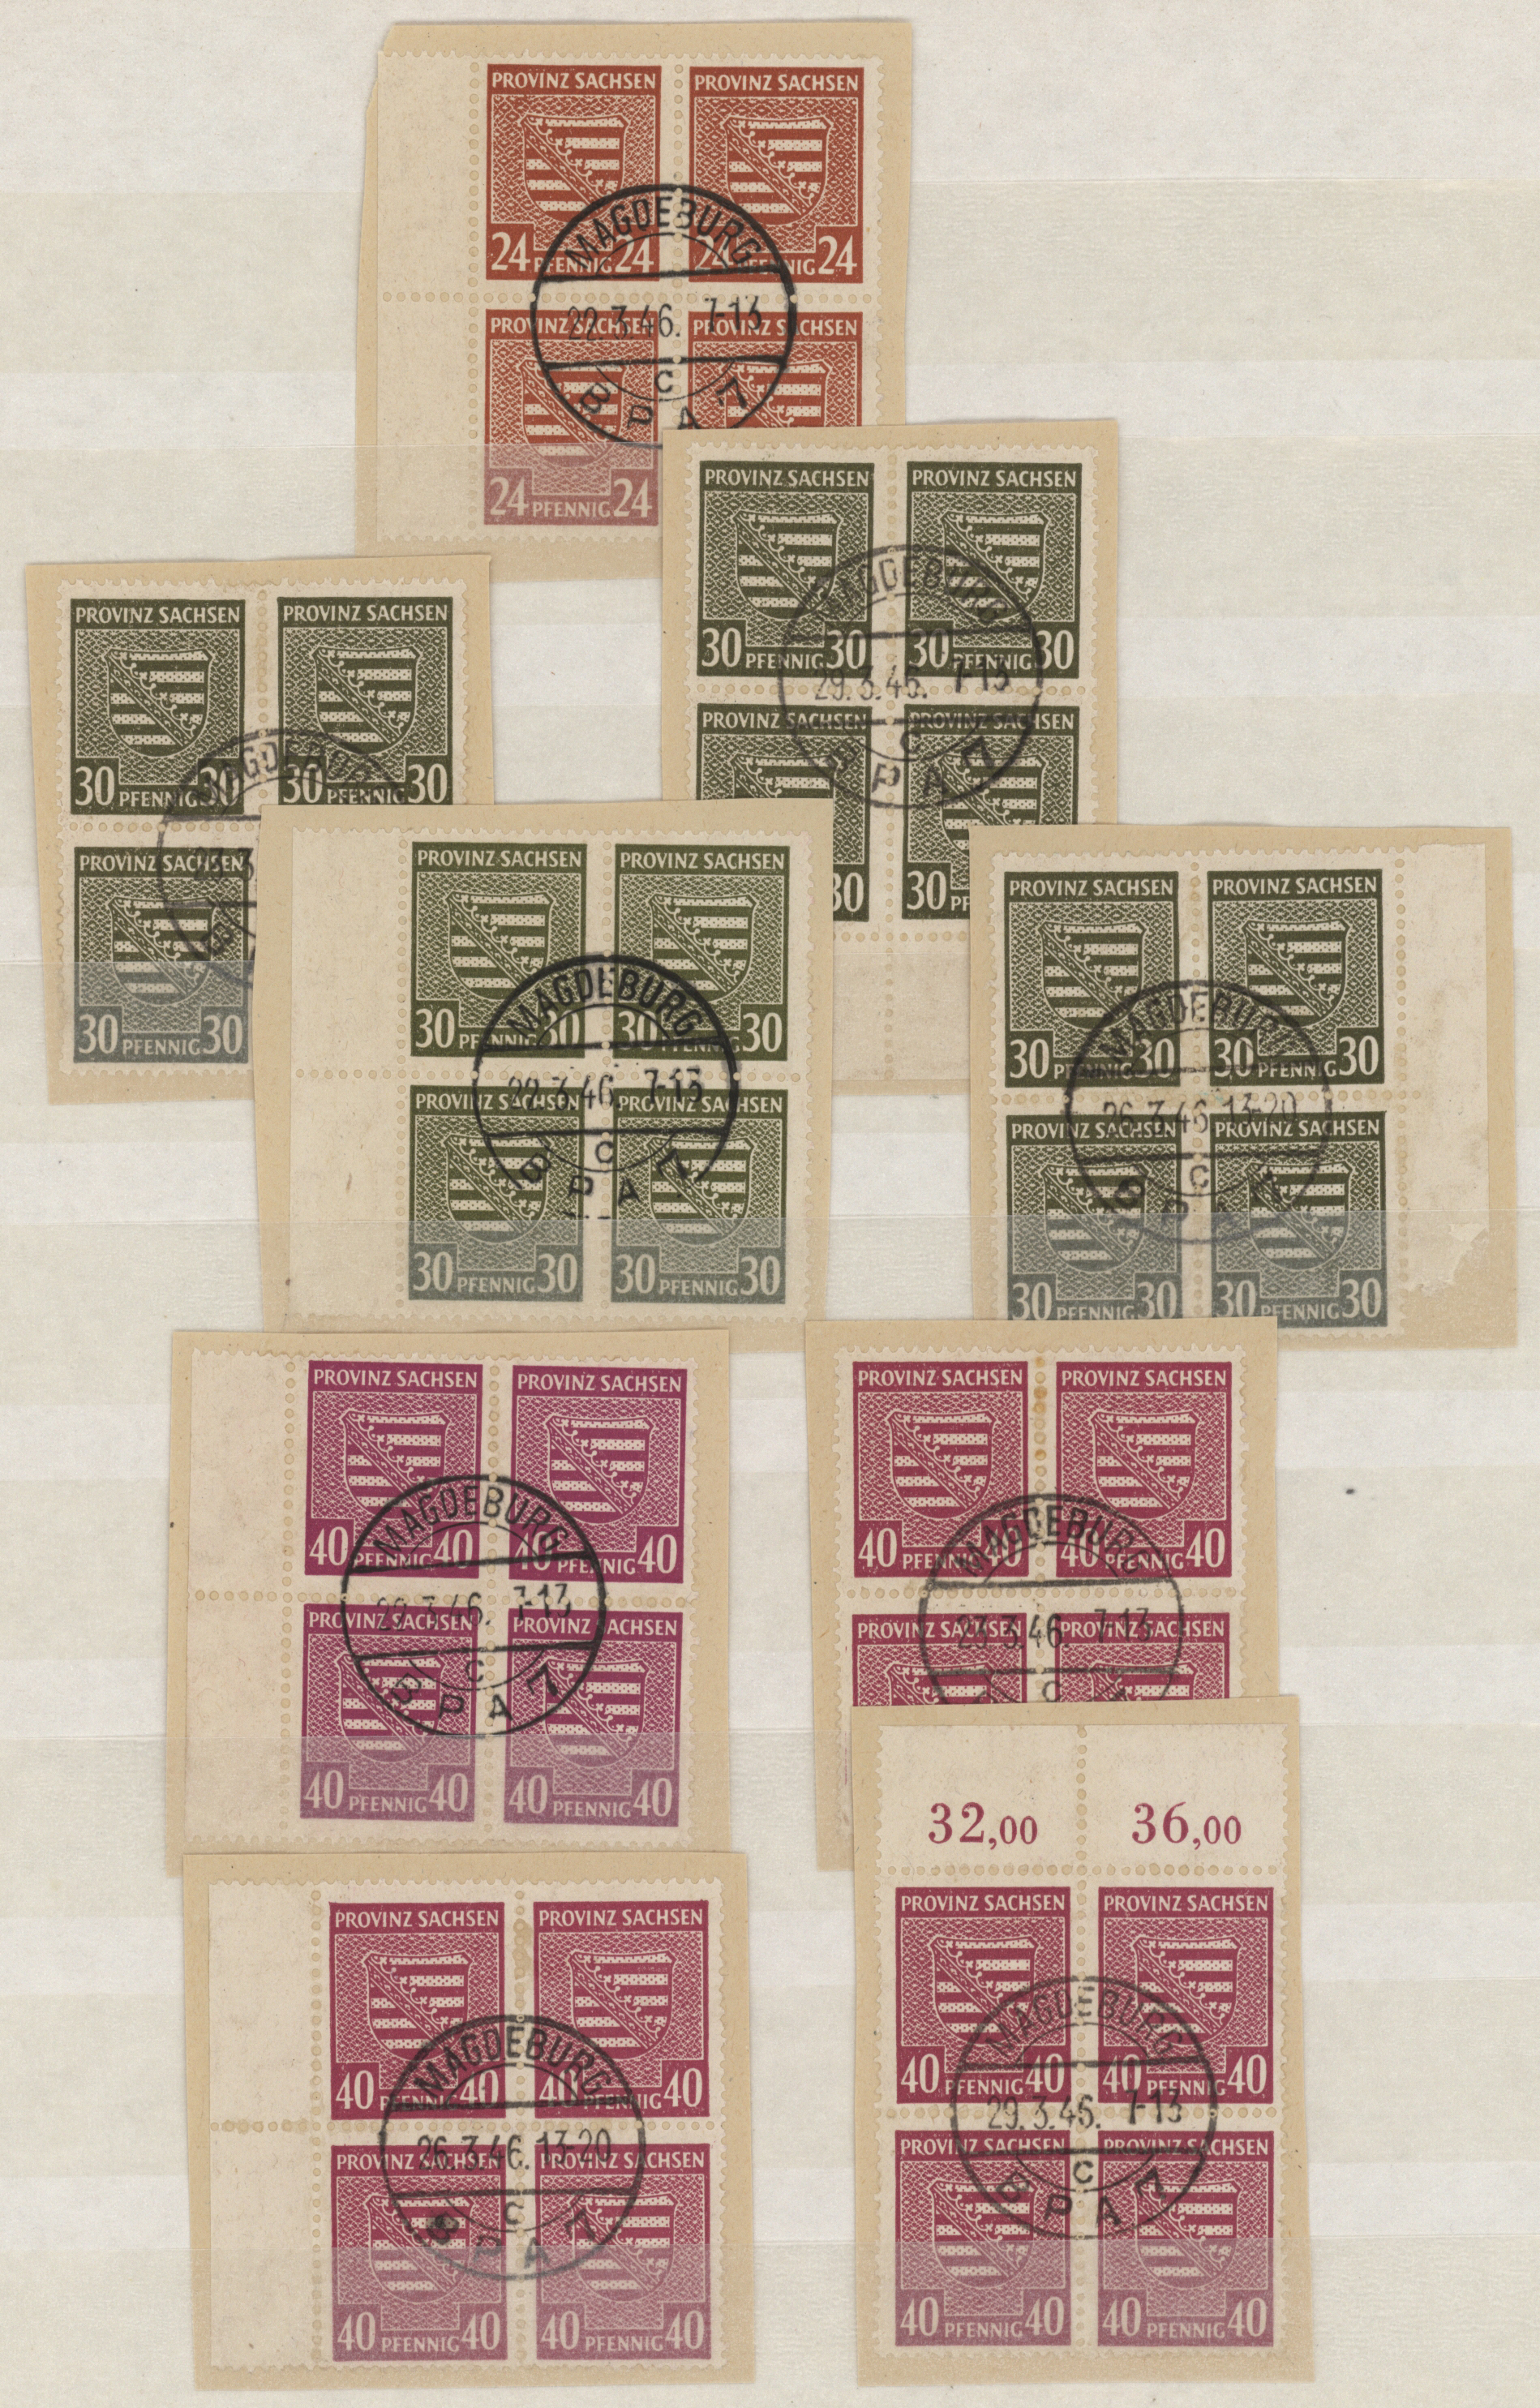 Lot 37960 - Sowjetische Zone - Provinz Sachsen  -  Auktionshaus Christoph Gärtner GmbH & Co. KG Collections Germany,  Collections Supplement, Surprise boxes #39 Day 7